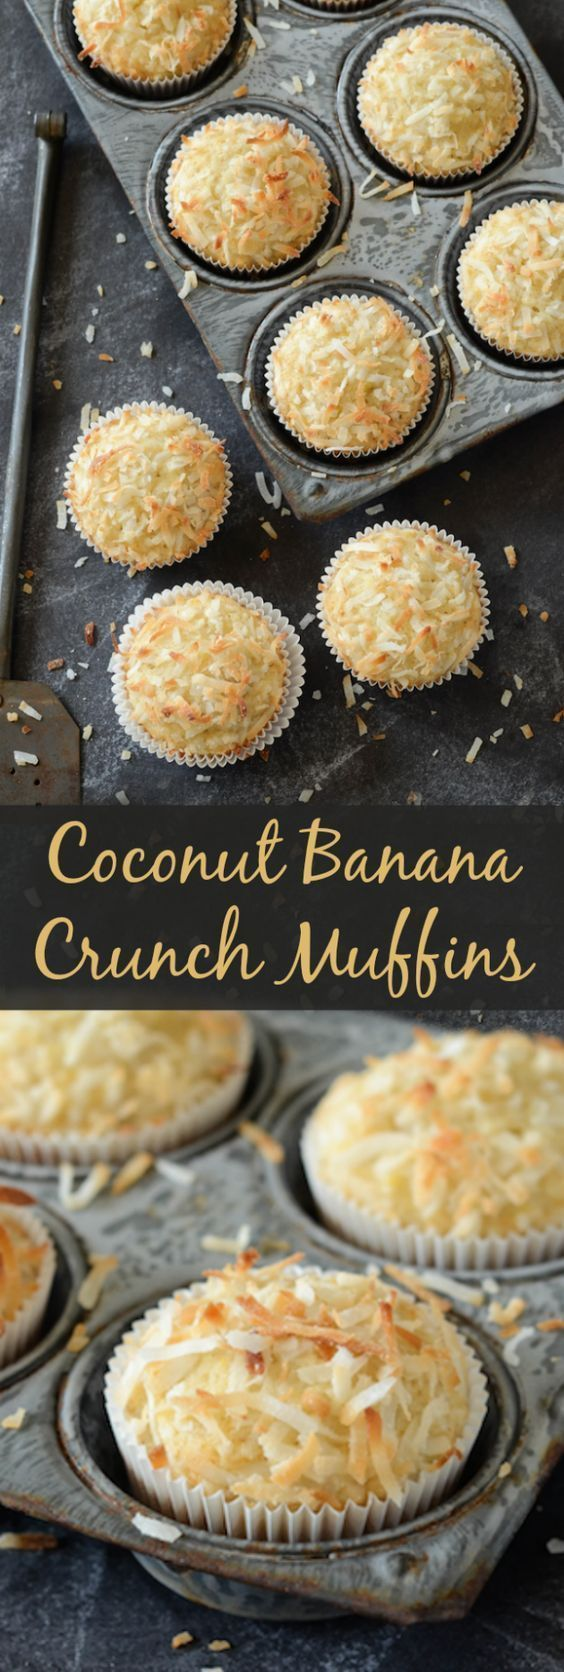 Coconut Banana Crunch Muffins -- awesome new recipe to use up those over ripe bananas!